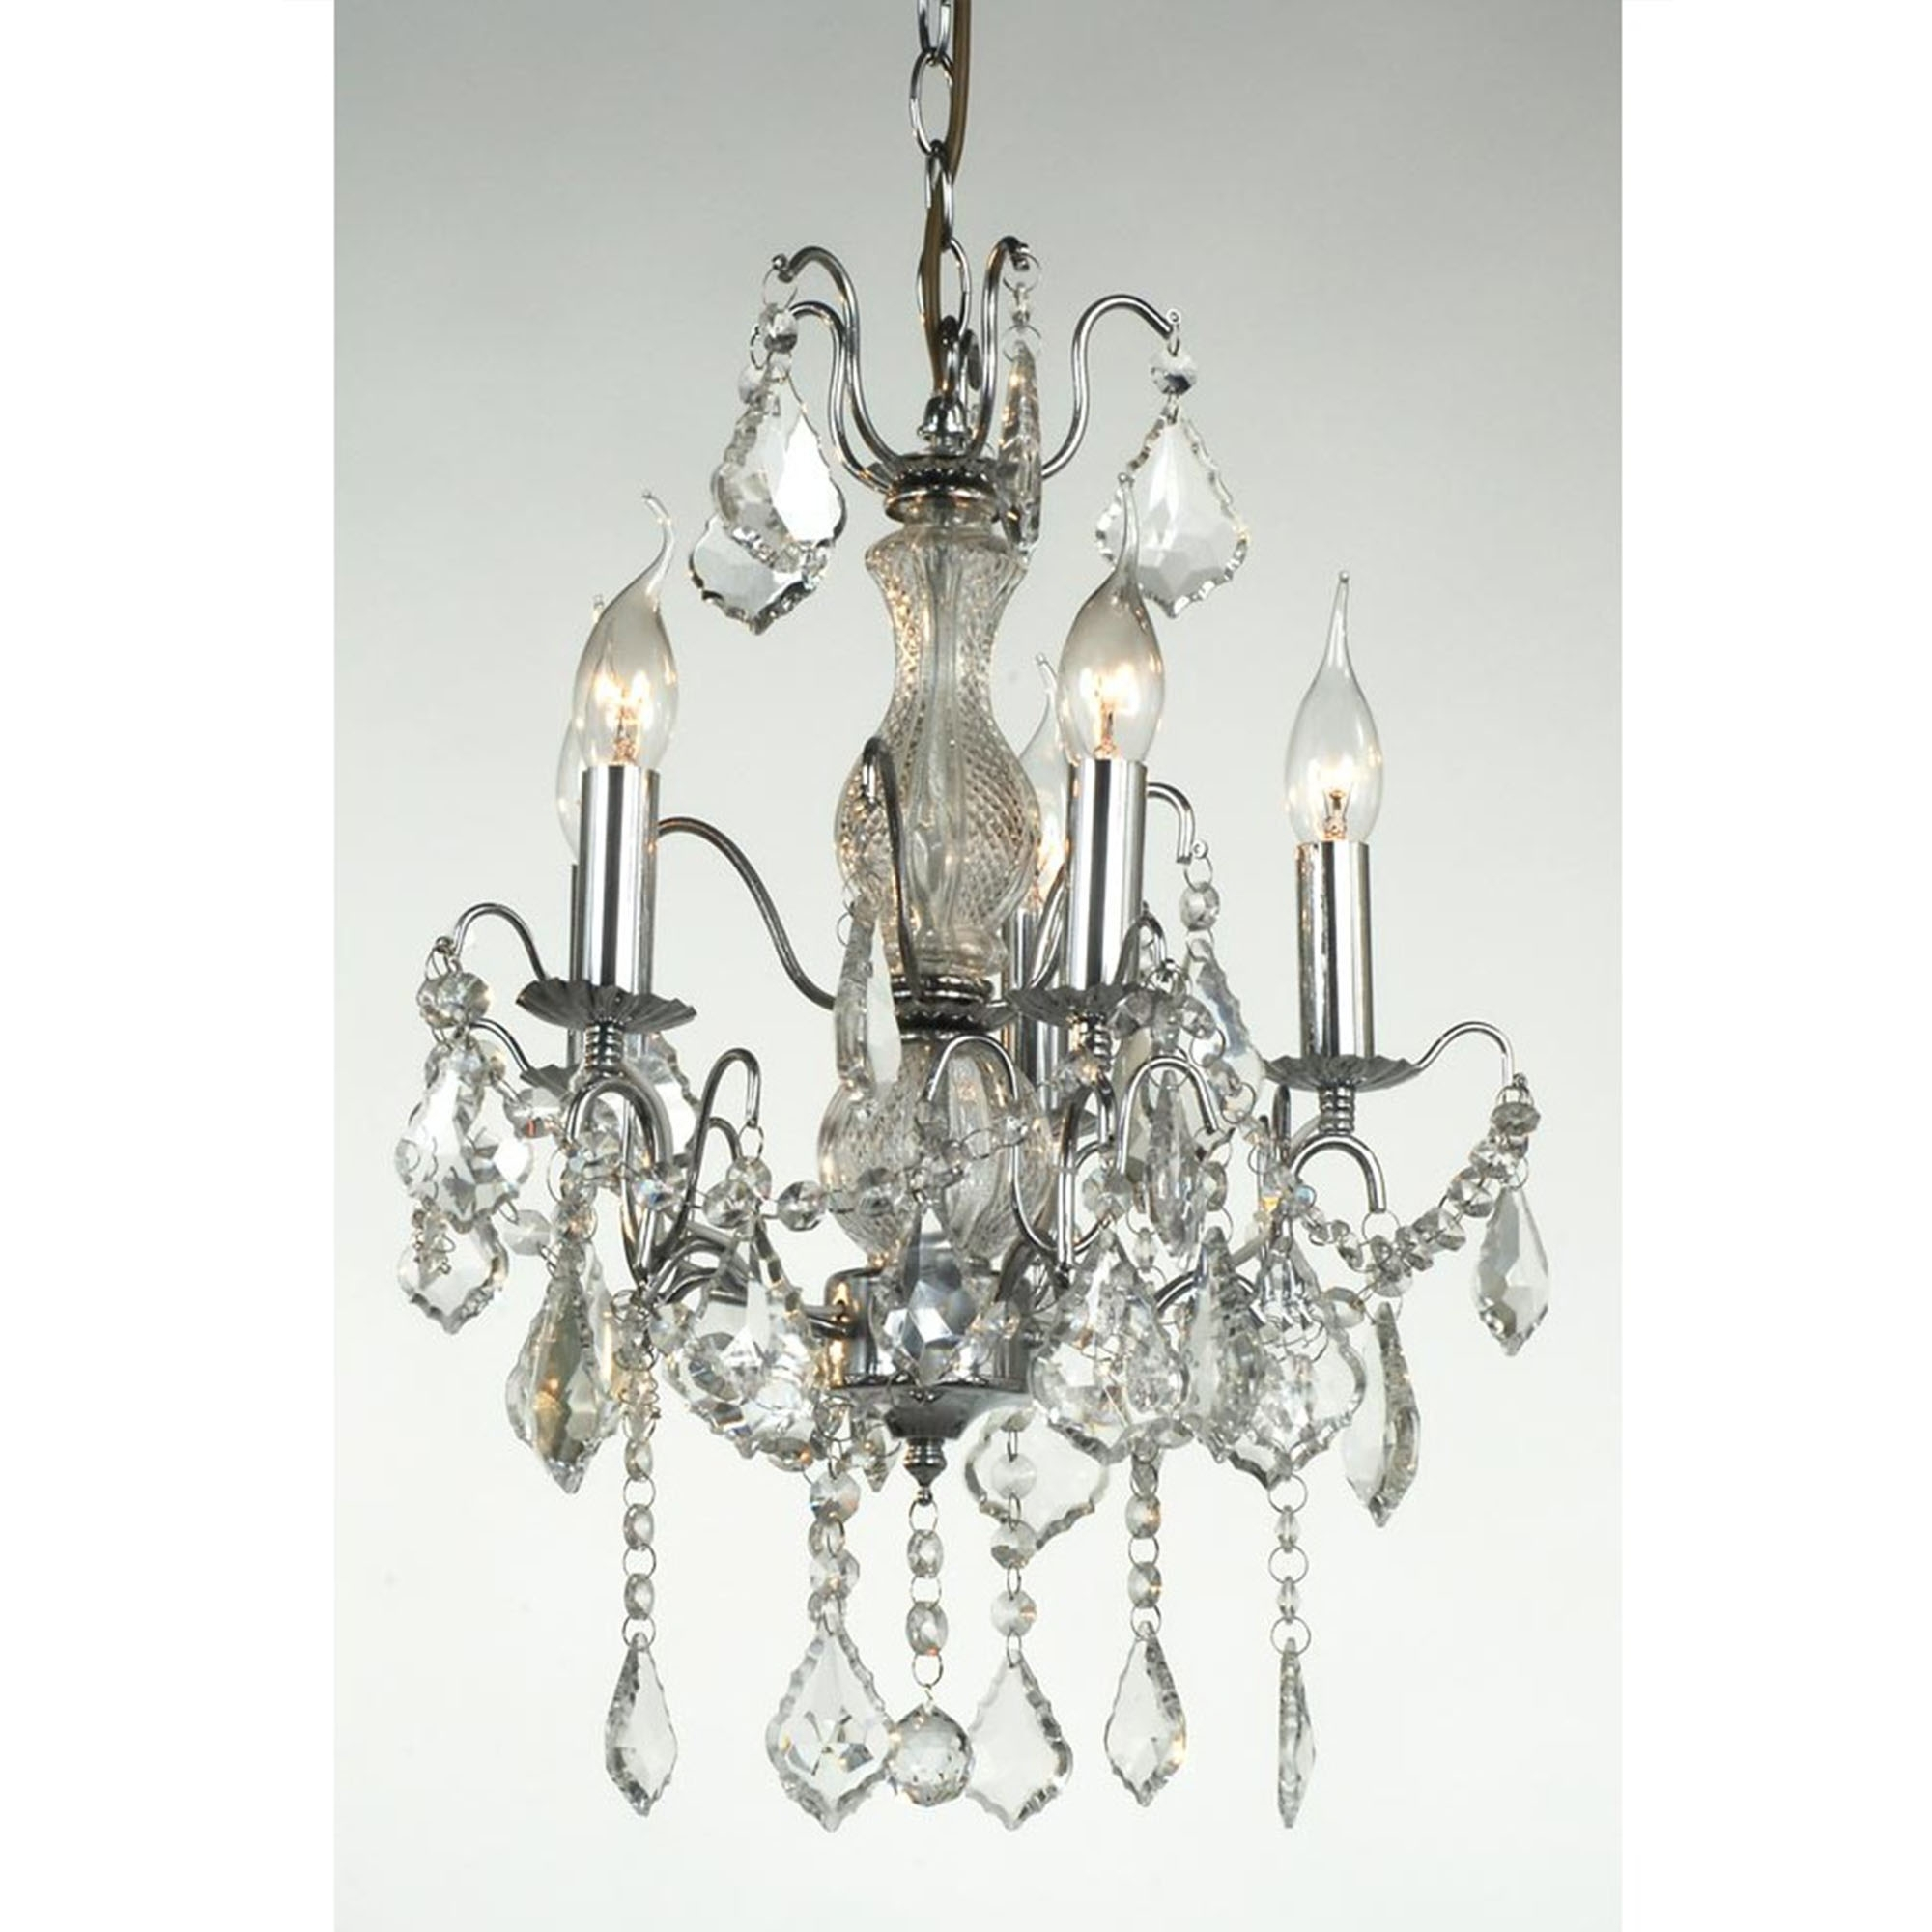 5 Arm Chrome Antique French Style Chandelier French Lighting With Regard To French Style Chandelier (#1 of 12)